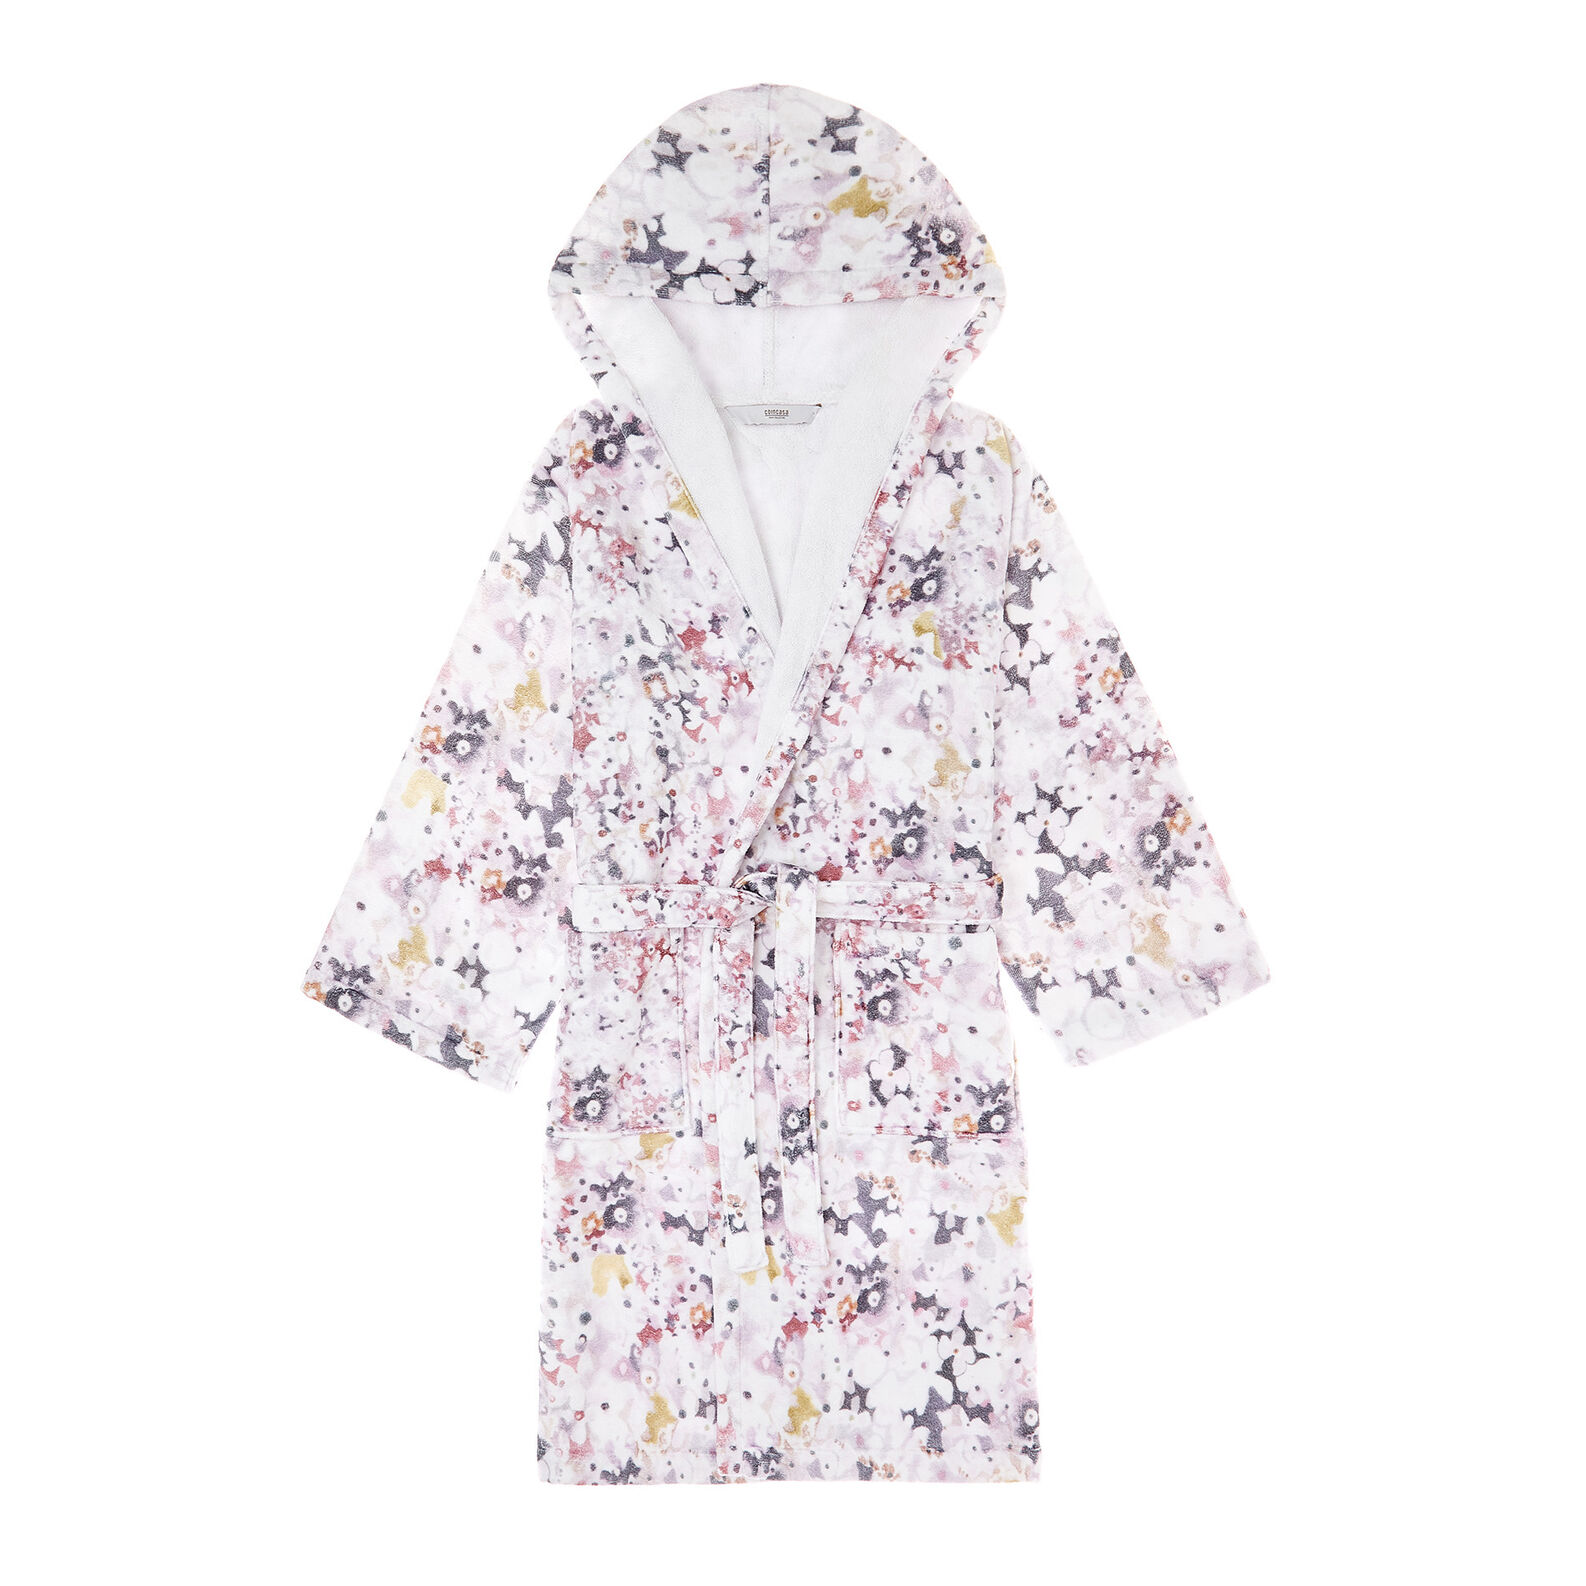 Bathrobe in 100% cotton velour with flowers print